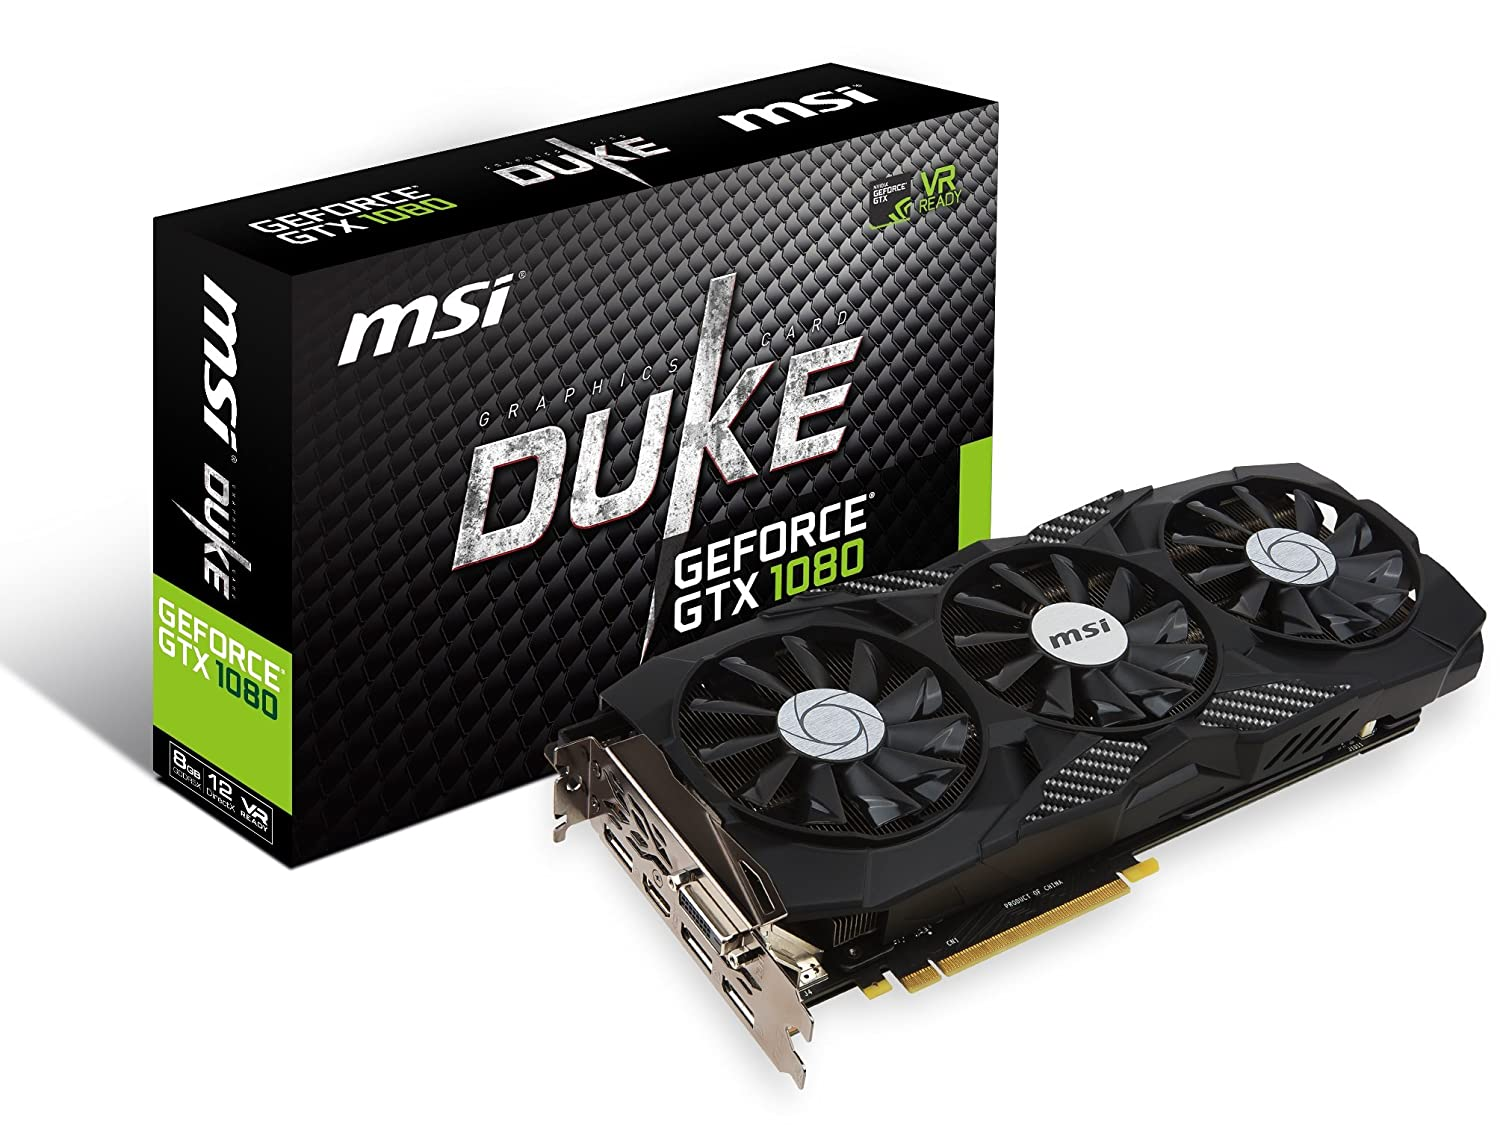 若者の大愛商品 MSI ゲーミング GTX GeForce 1080 GTX Ready 1070 8GB GDDR5 DirectX 12 VR Ready (GeForce GTX 1070 SEA Hawk X) G1080GXp8 B06XGMJJ2K GTX 1080 デューク 8G OC, one clothing:68523f3a --- martinemoeykens.com